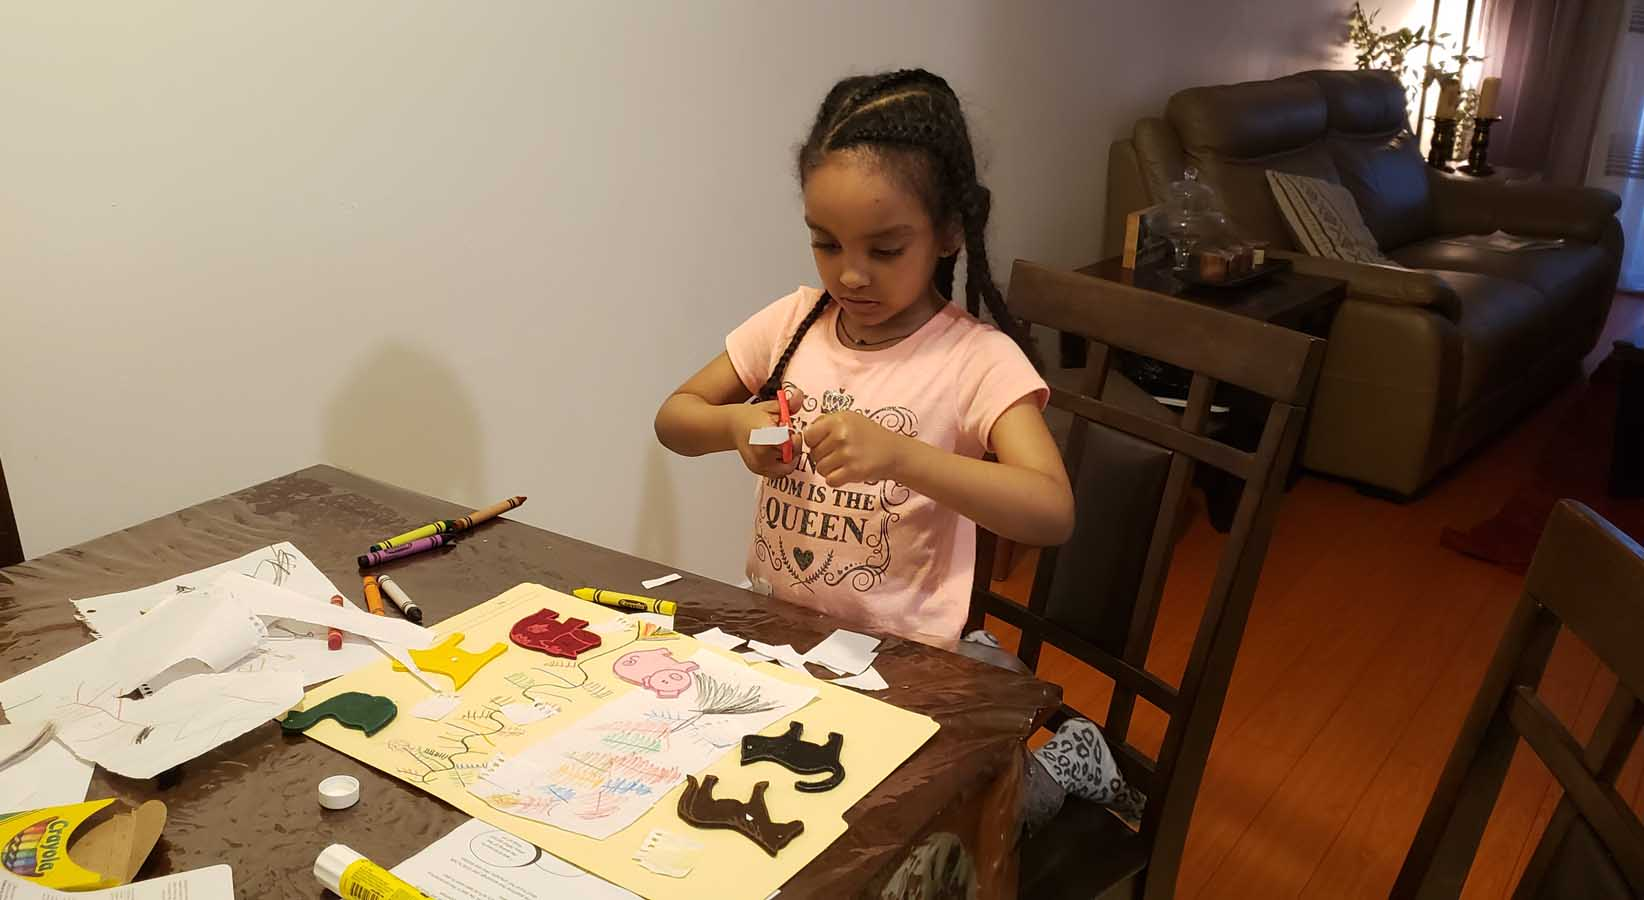 Simret's daughter Azahel playing at a table.